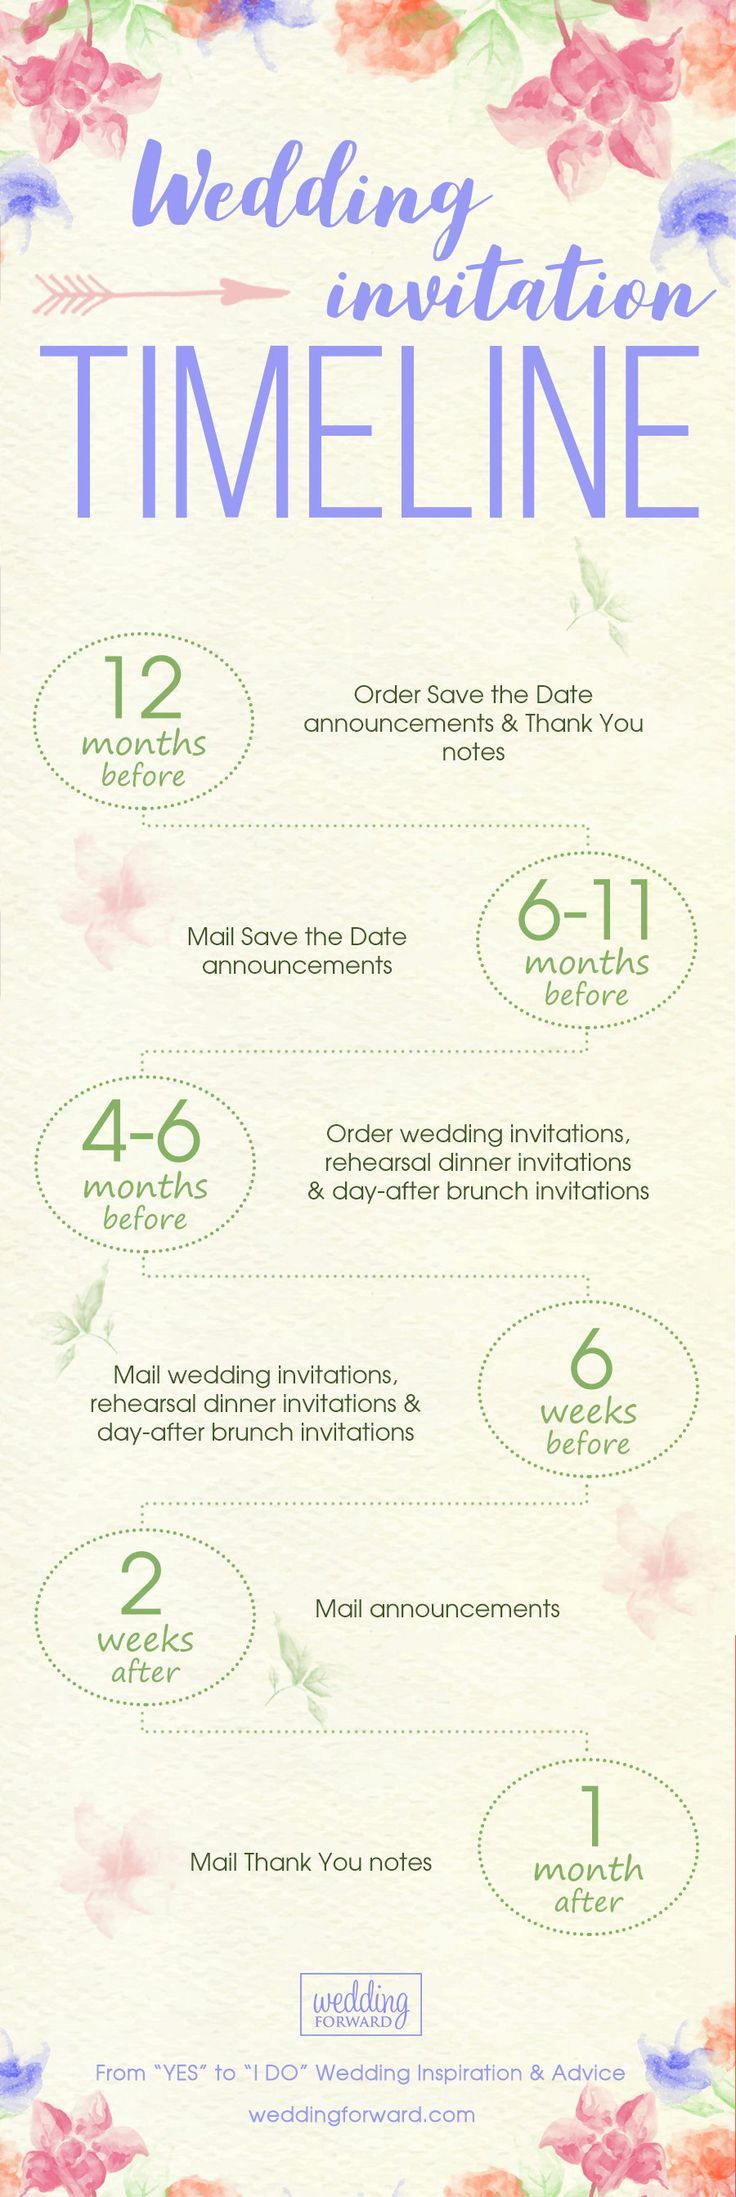 Wedding Stationery Guide   What To Get, Send U0026 When